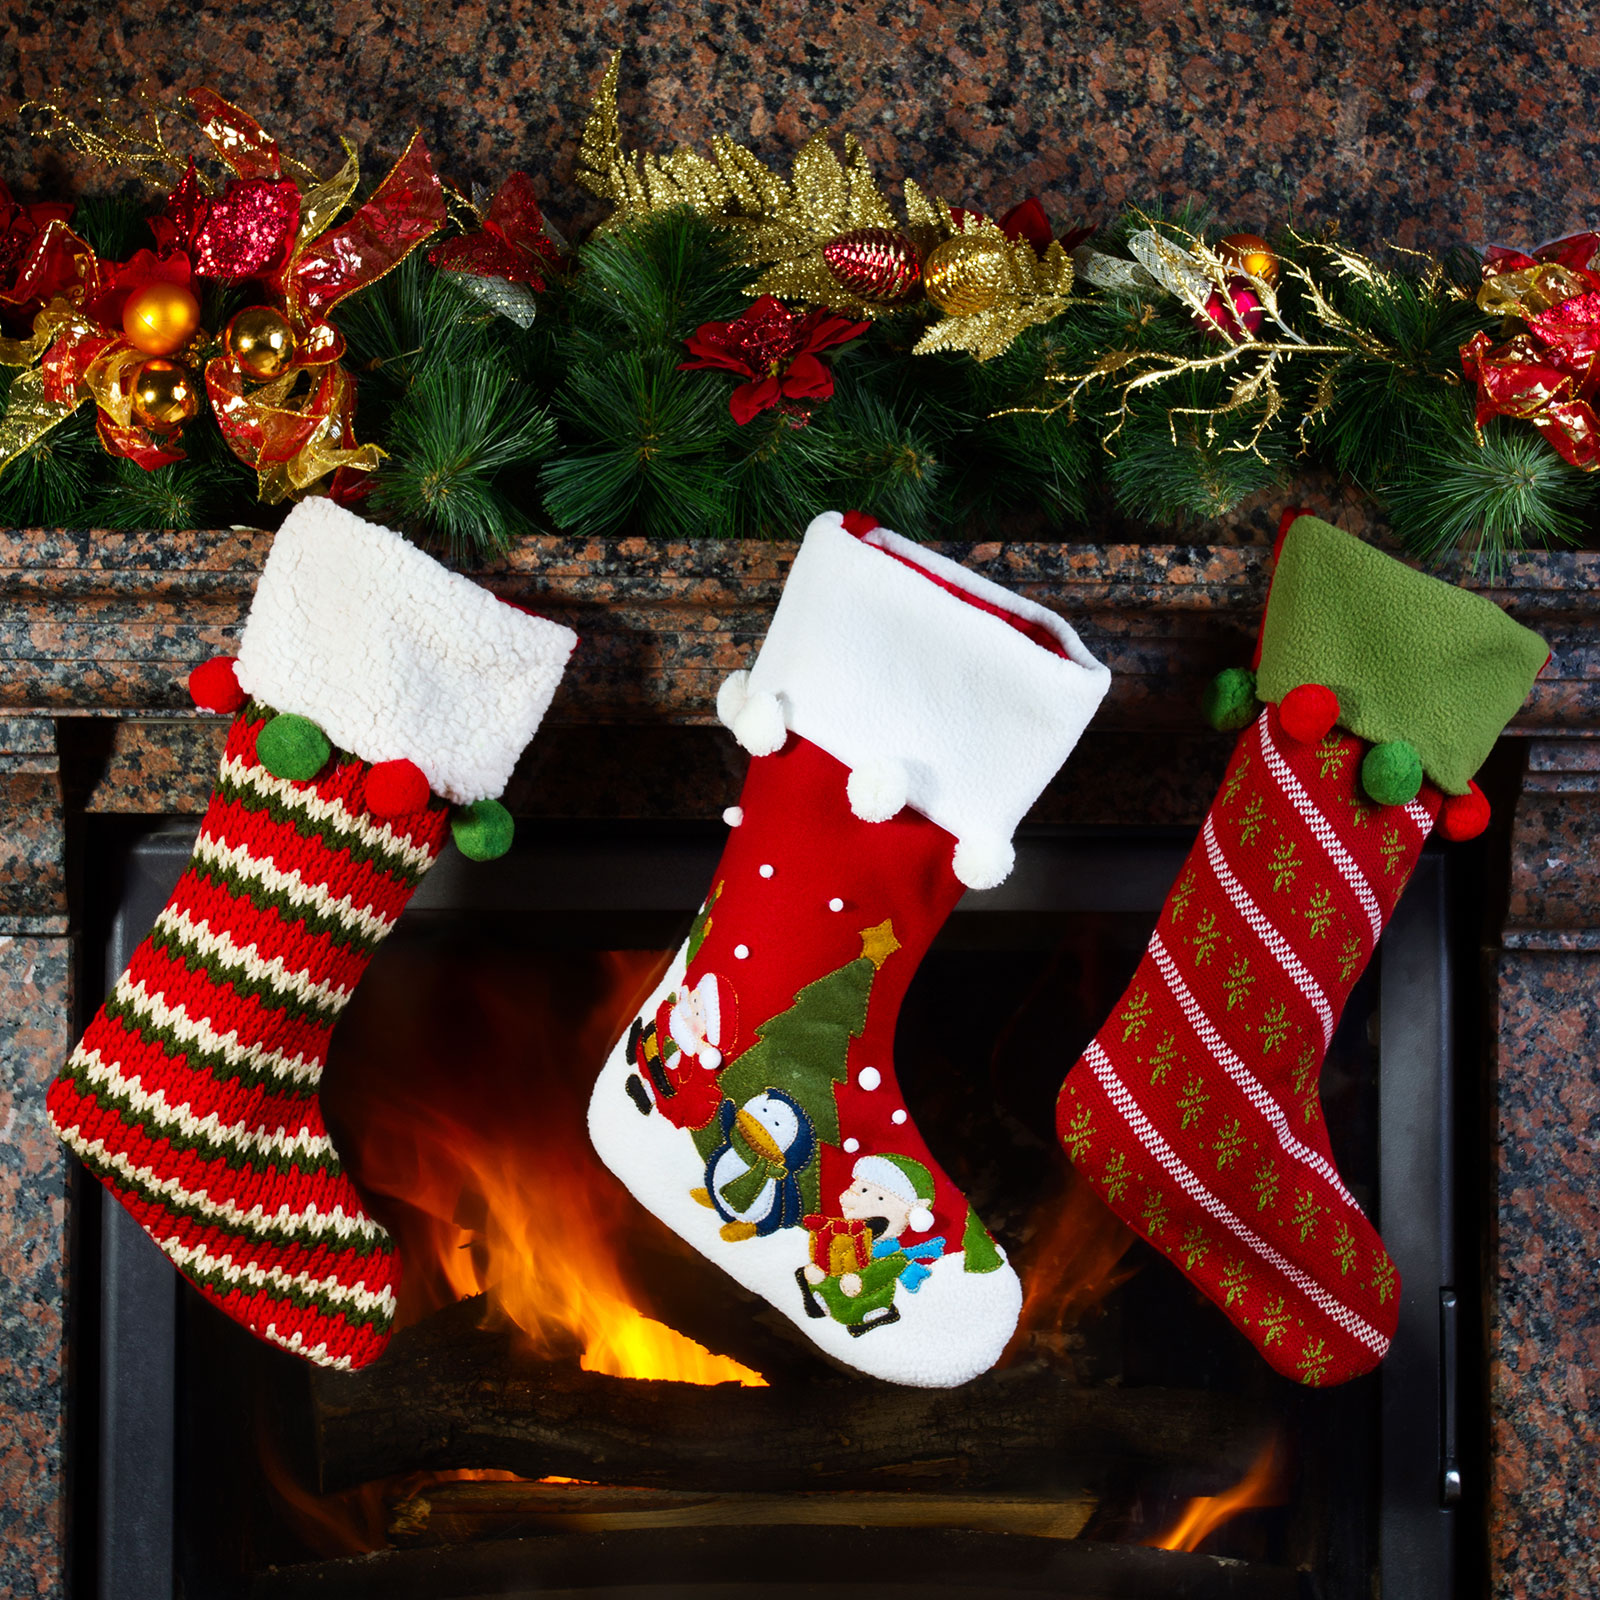 Pictures of Unique Christmas Stockings | LoveToKnow